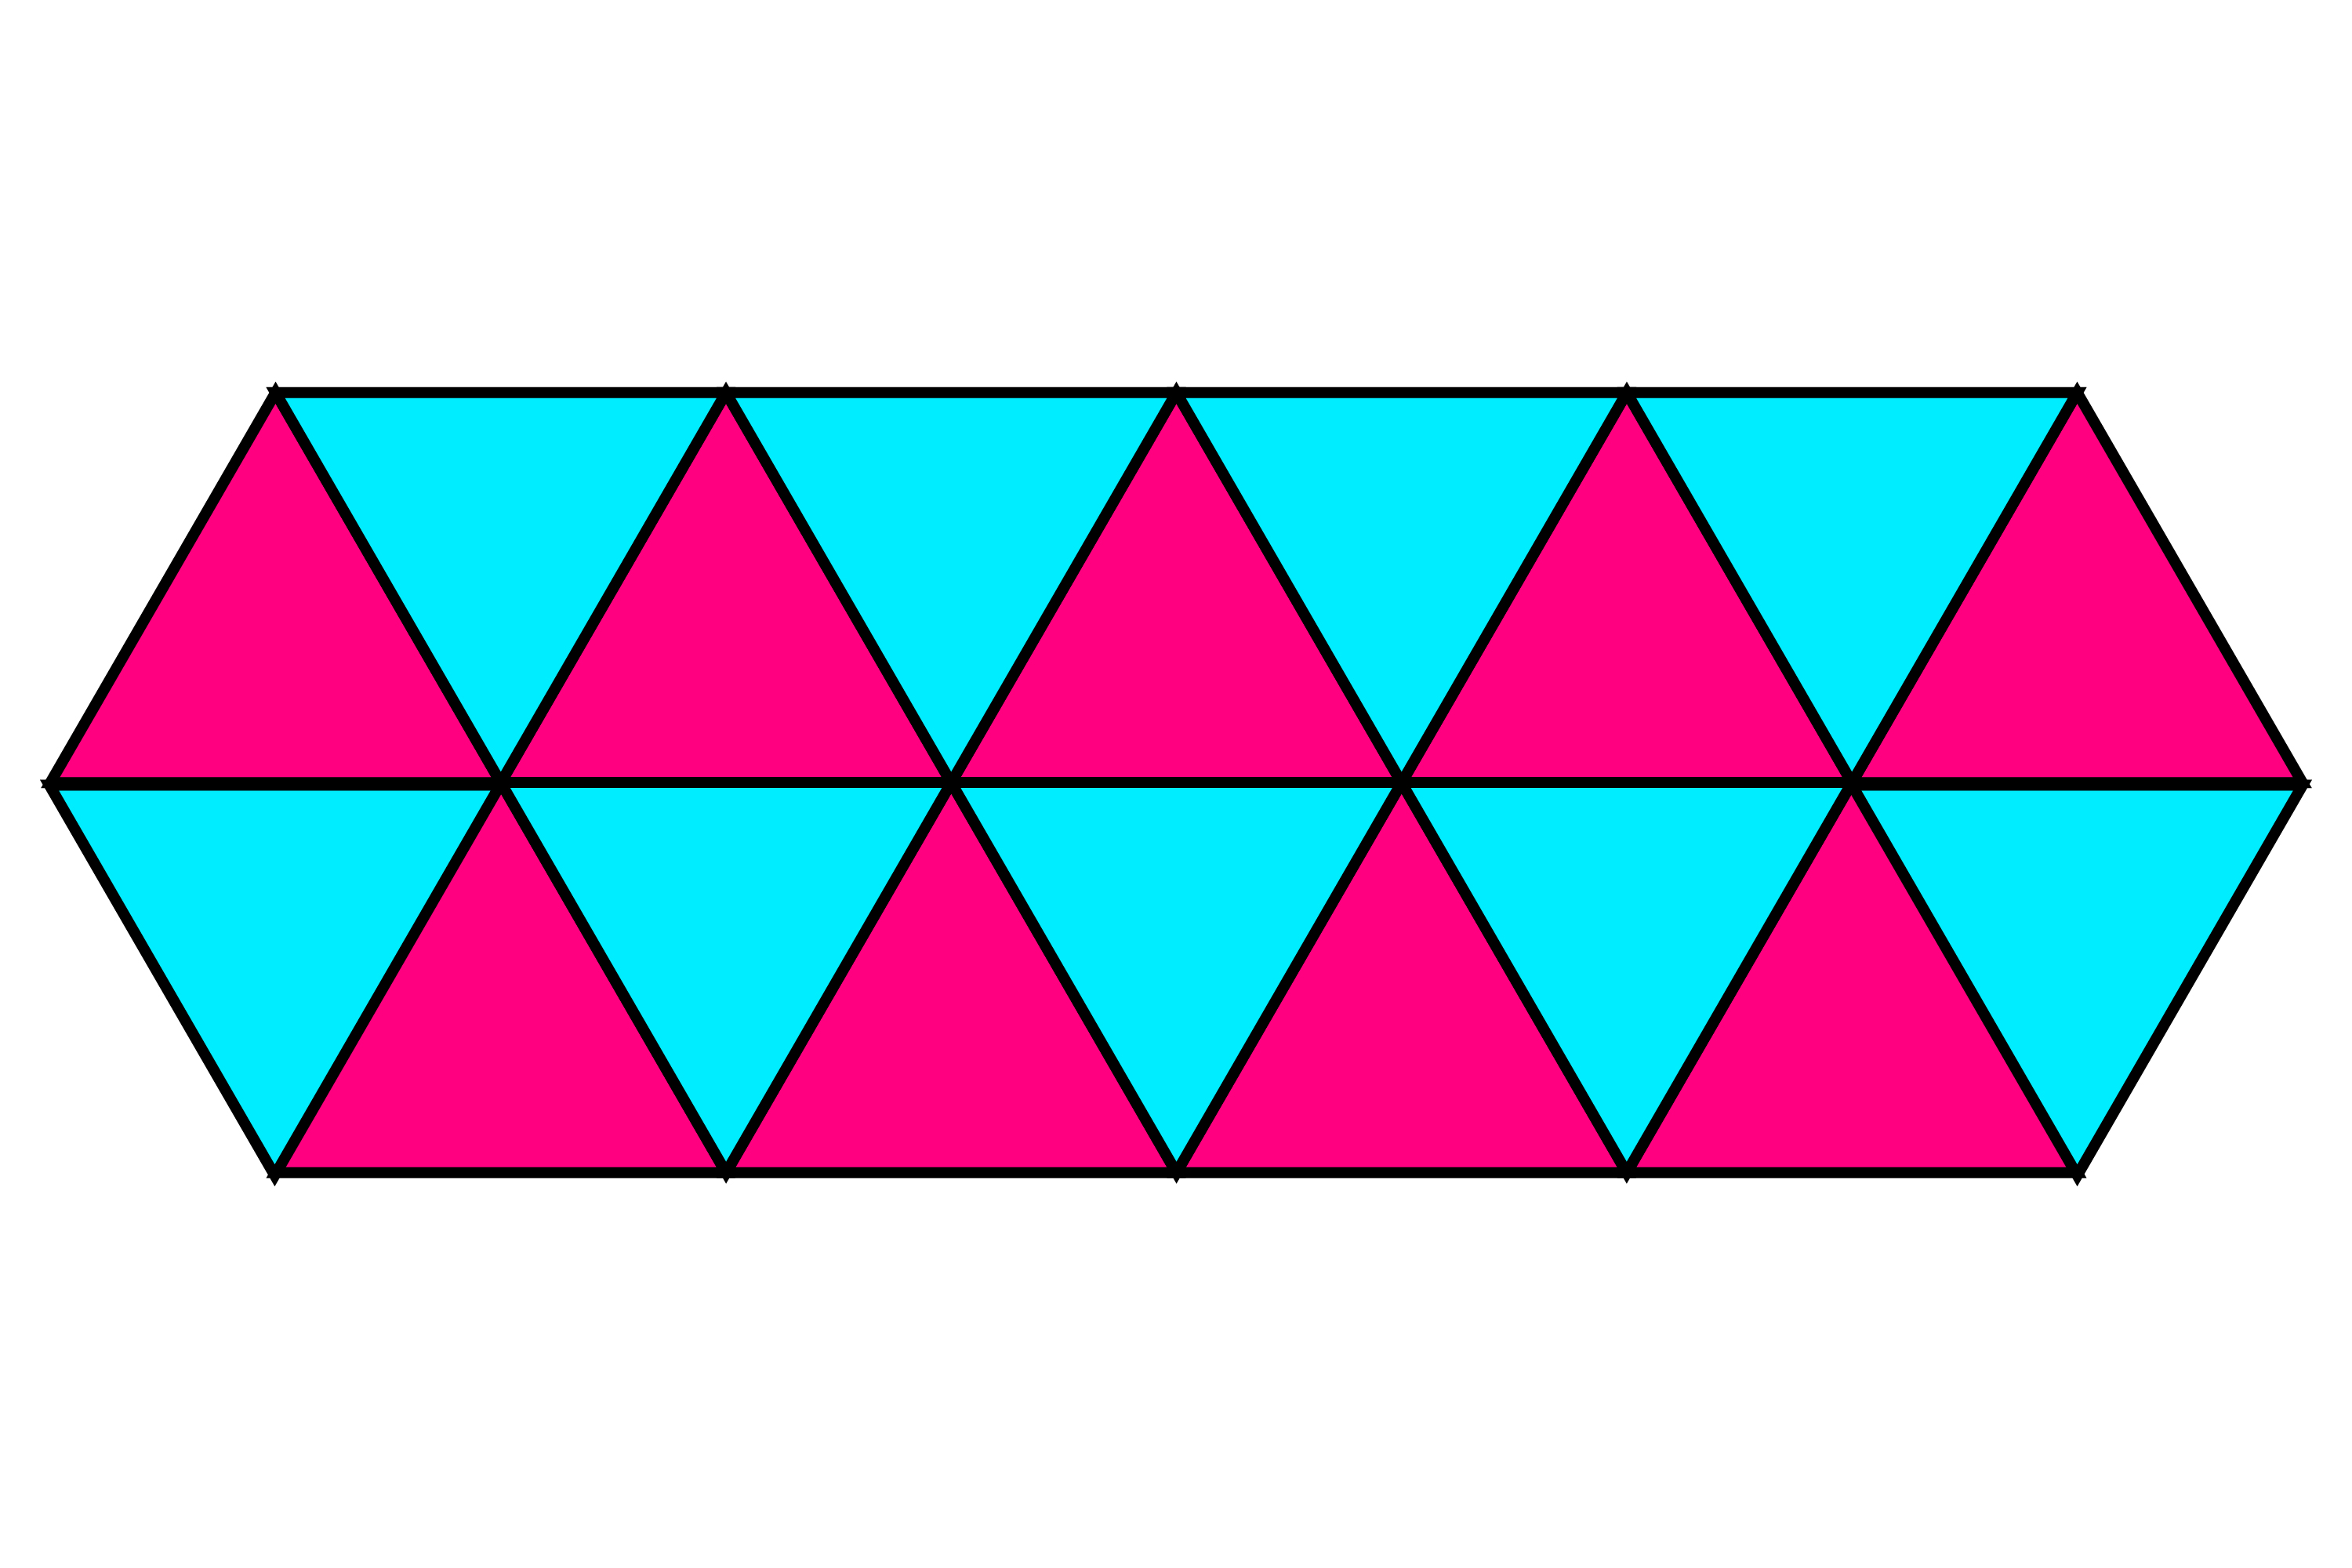 Triangles make tessellations